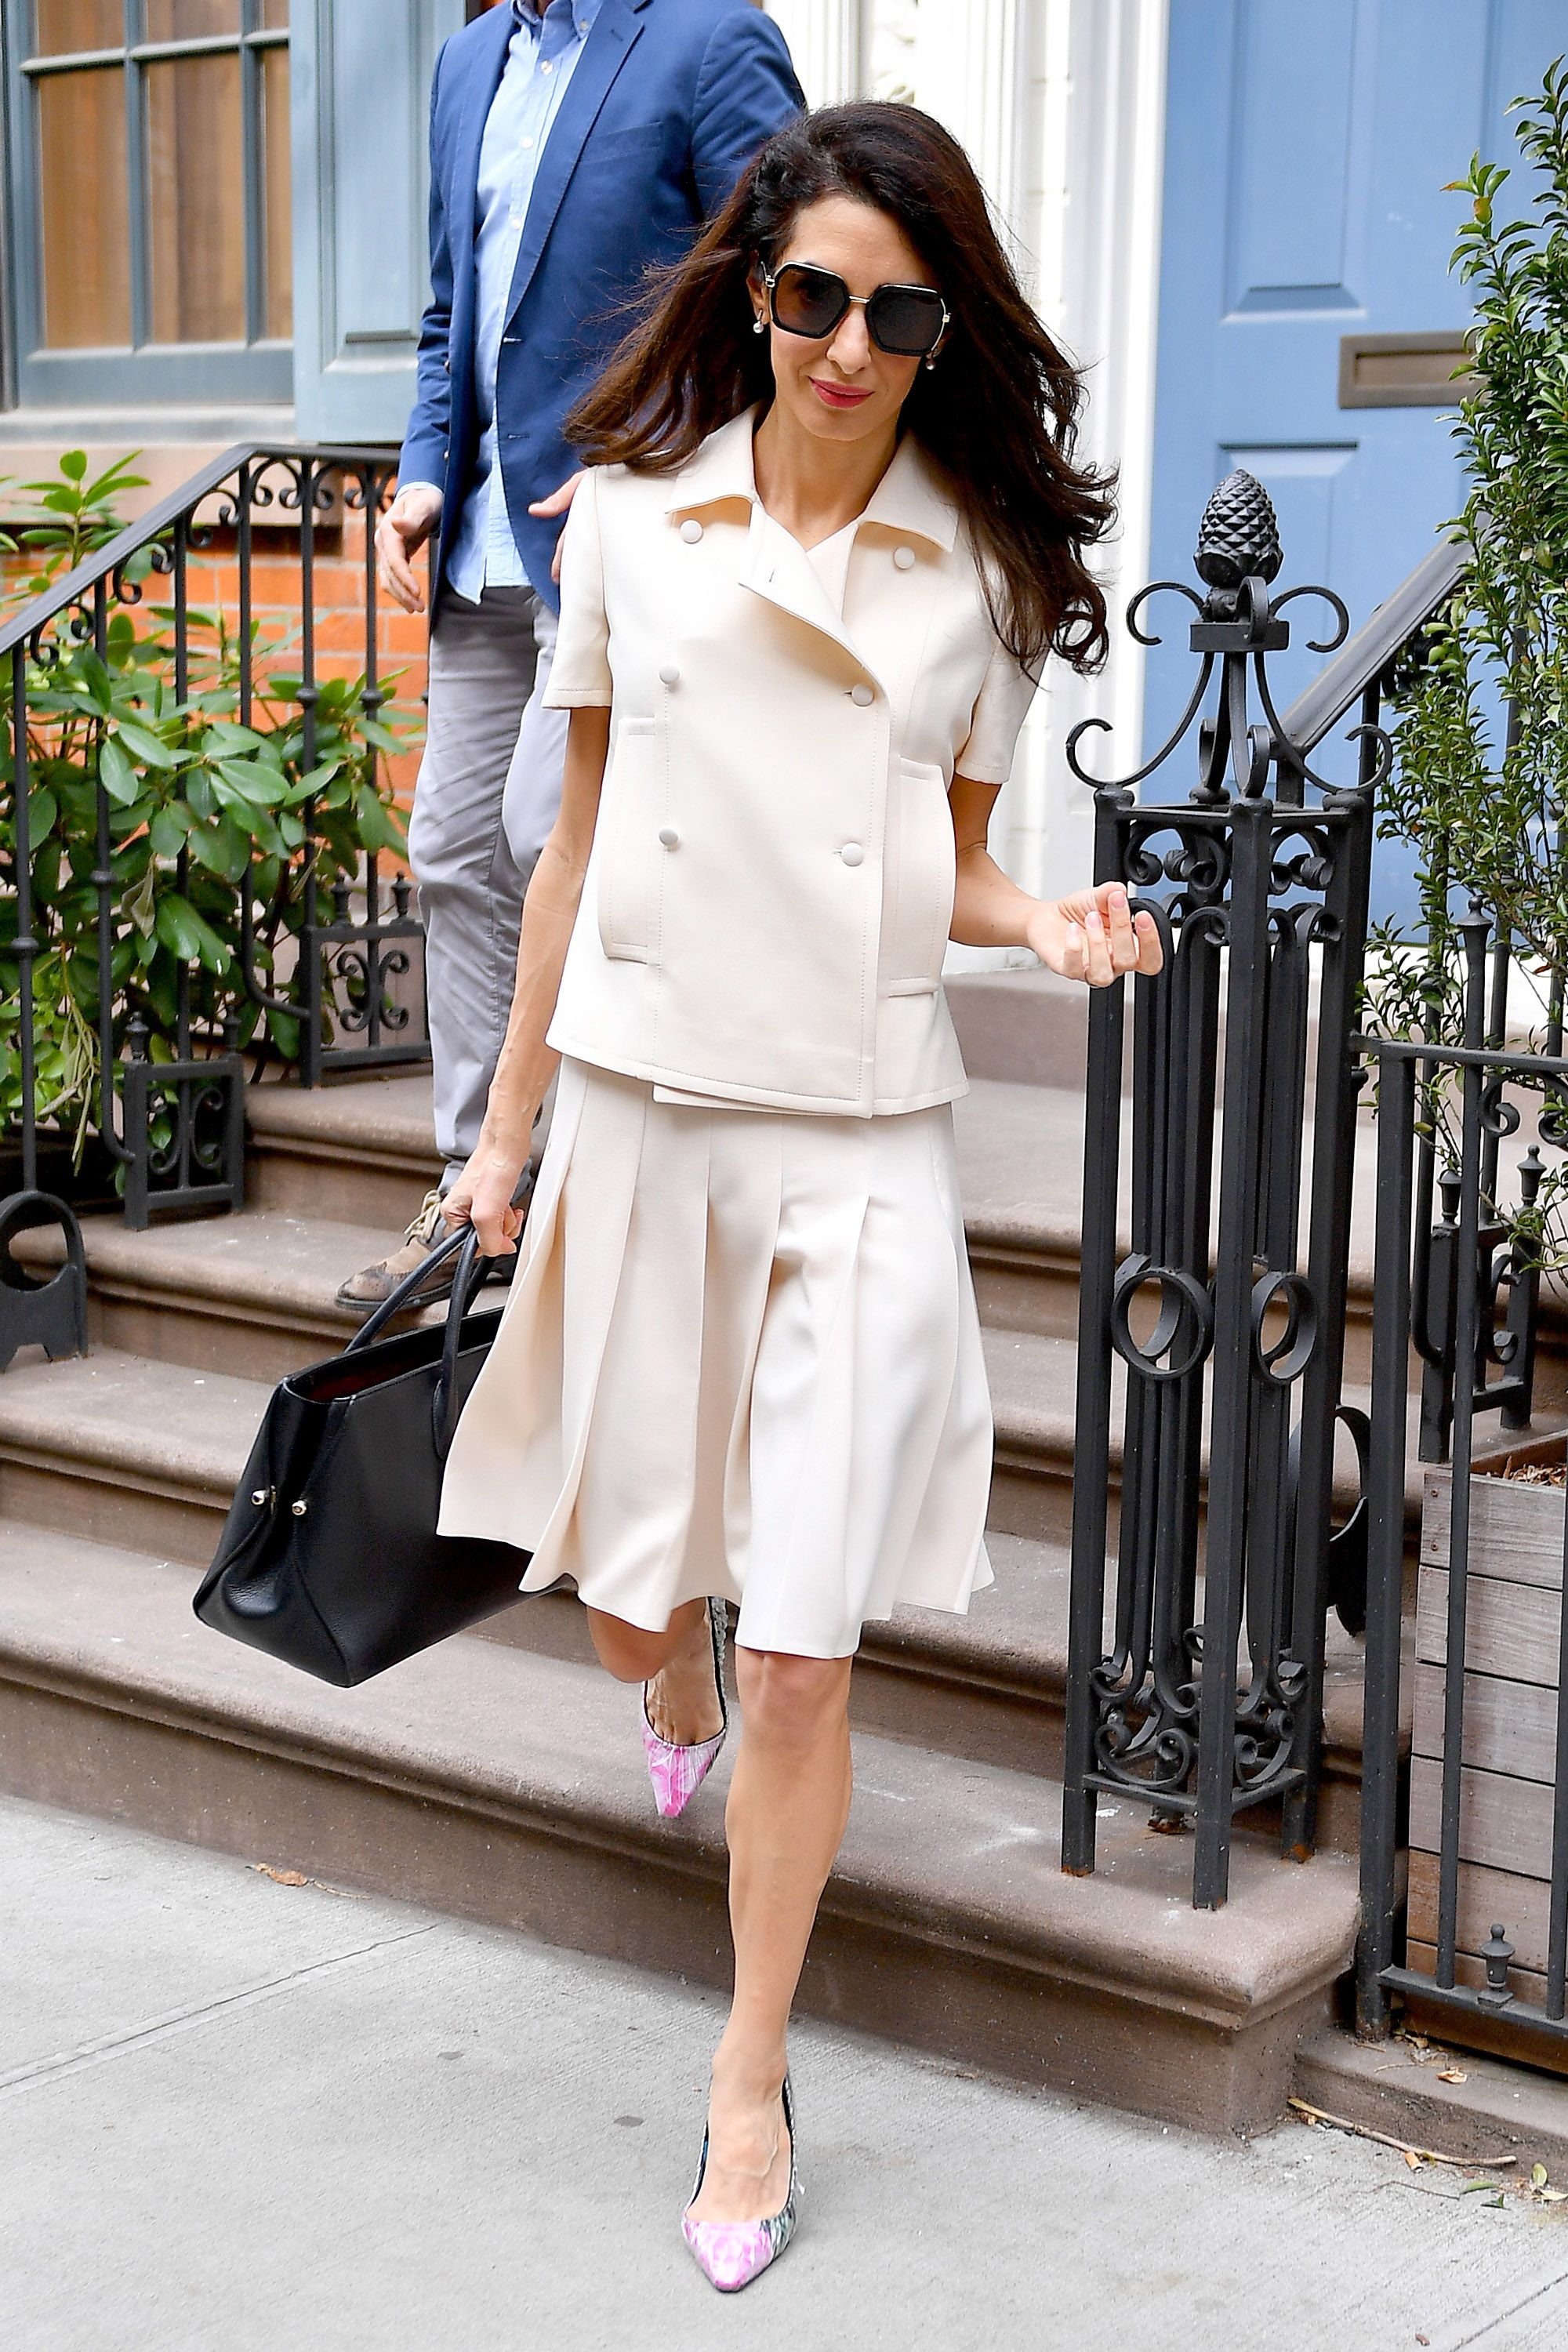 1981a29f8bf1 Amal Clooney's Best Looks - Pictures of Amal Clooney's Top Fashion Moments